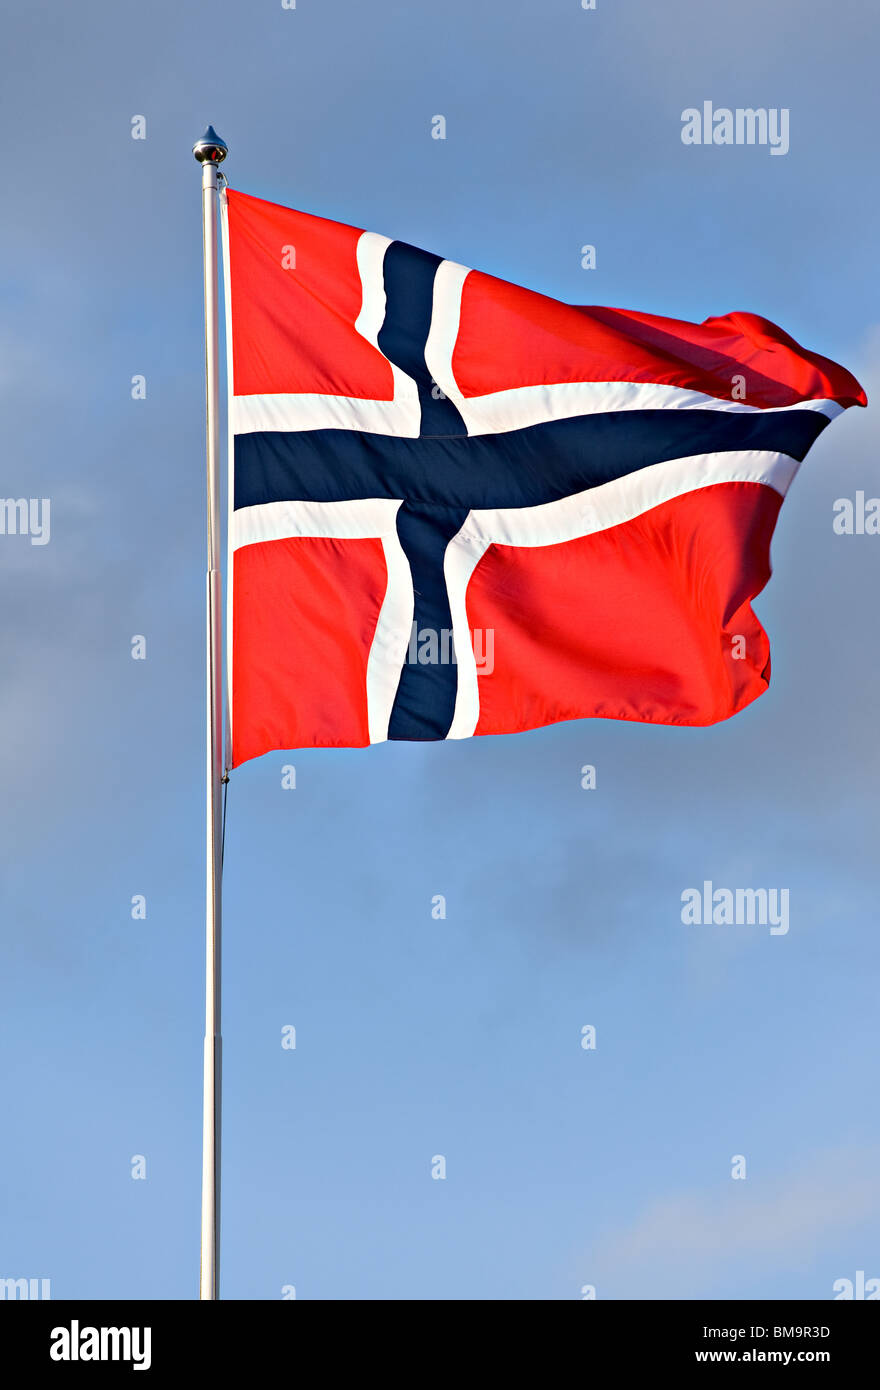 Norwegian Flag Flies Proudly in a Breeze from a Flagpole in a Clear Blue Sky - Stock Image